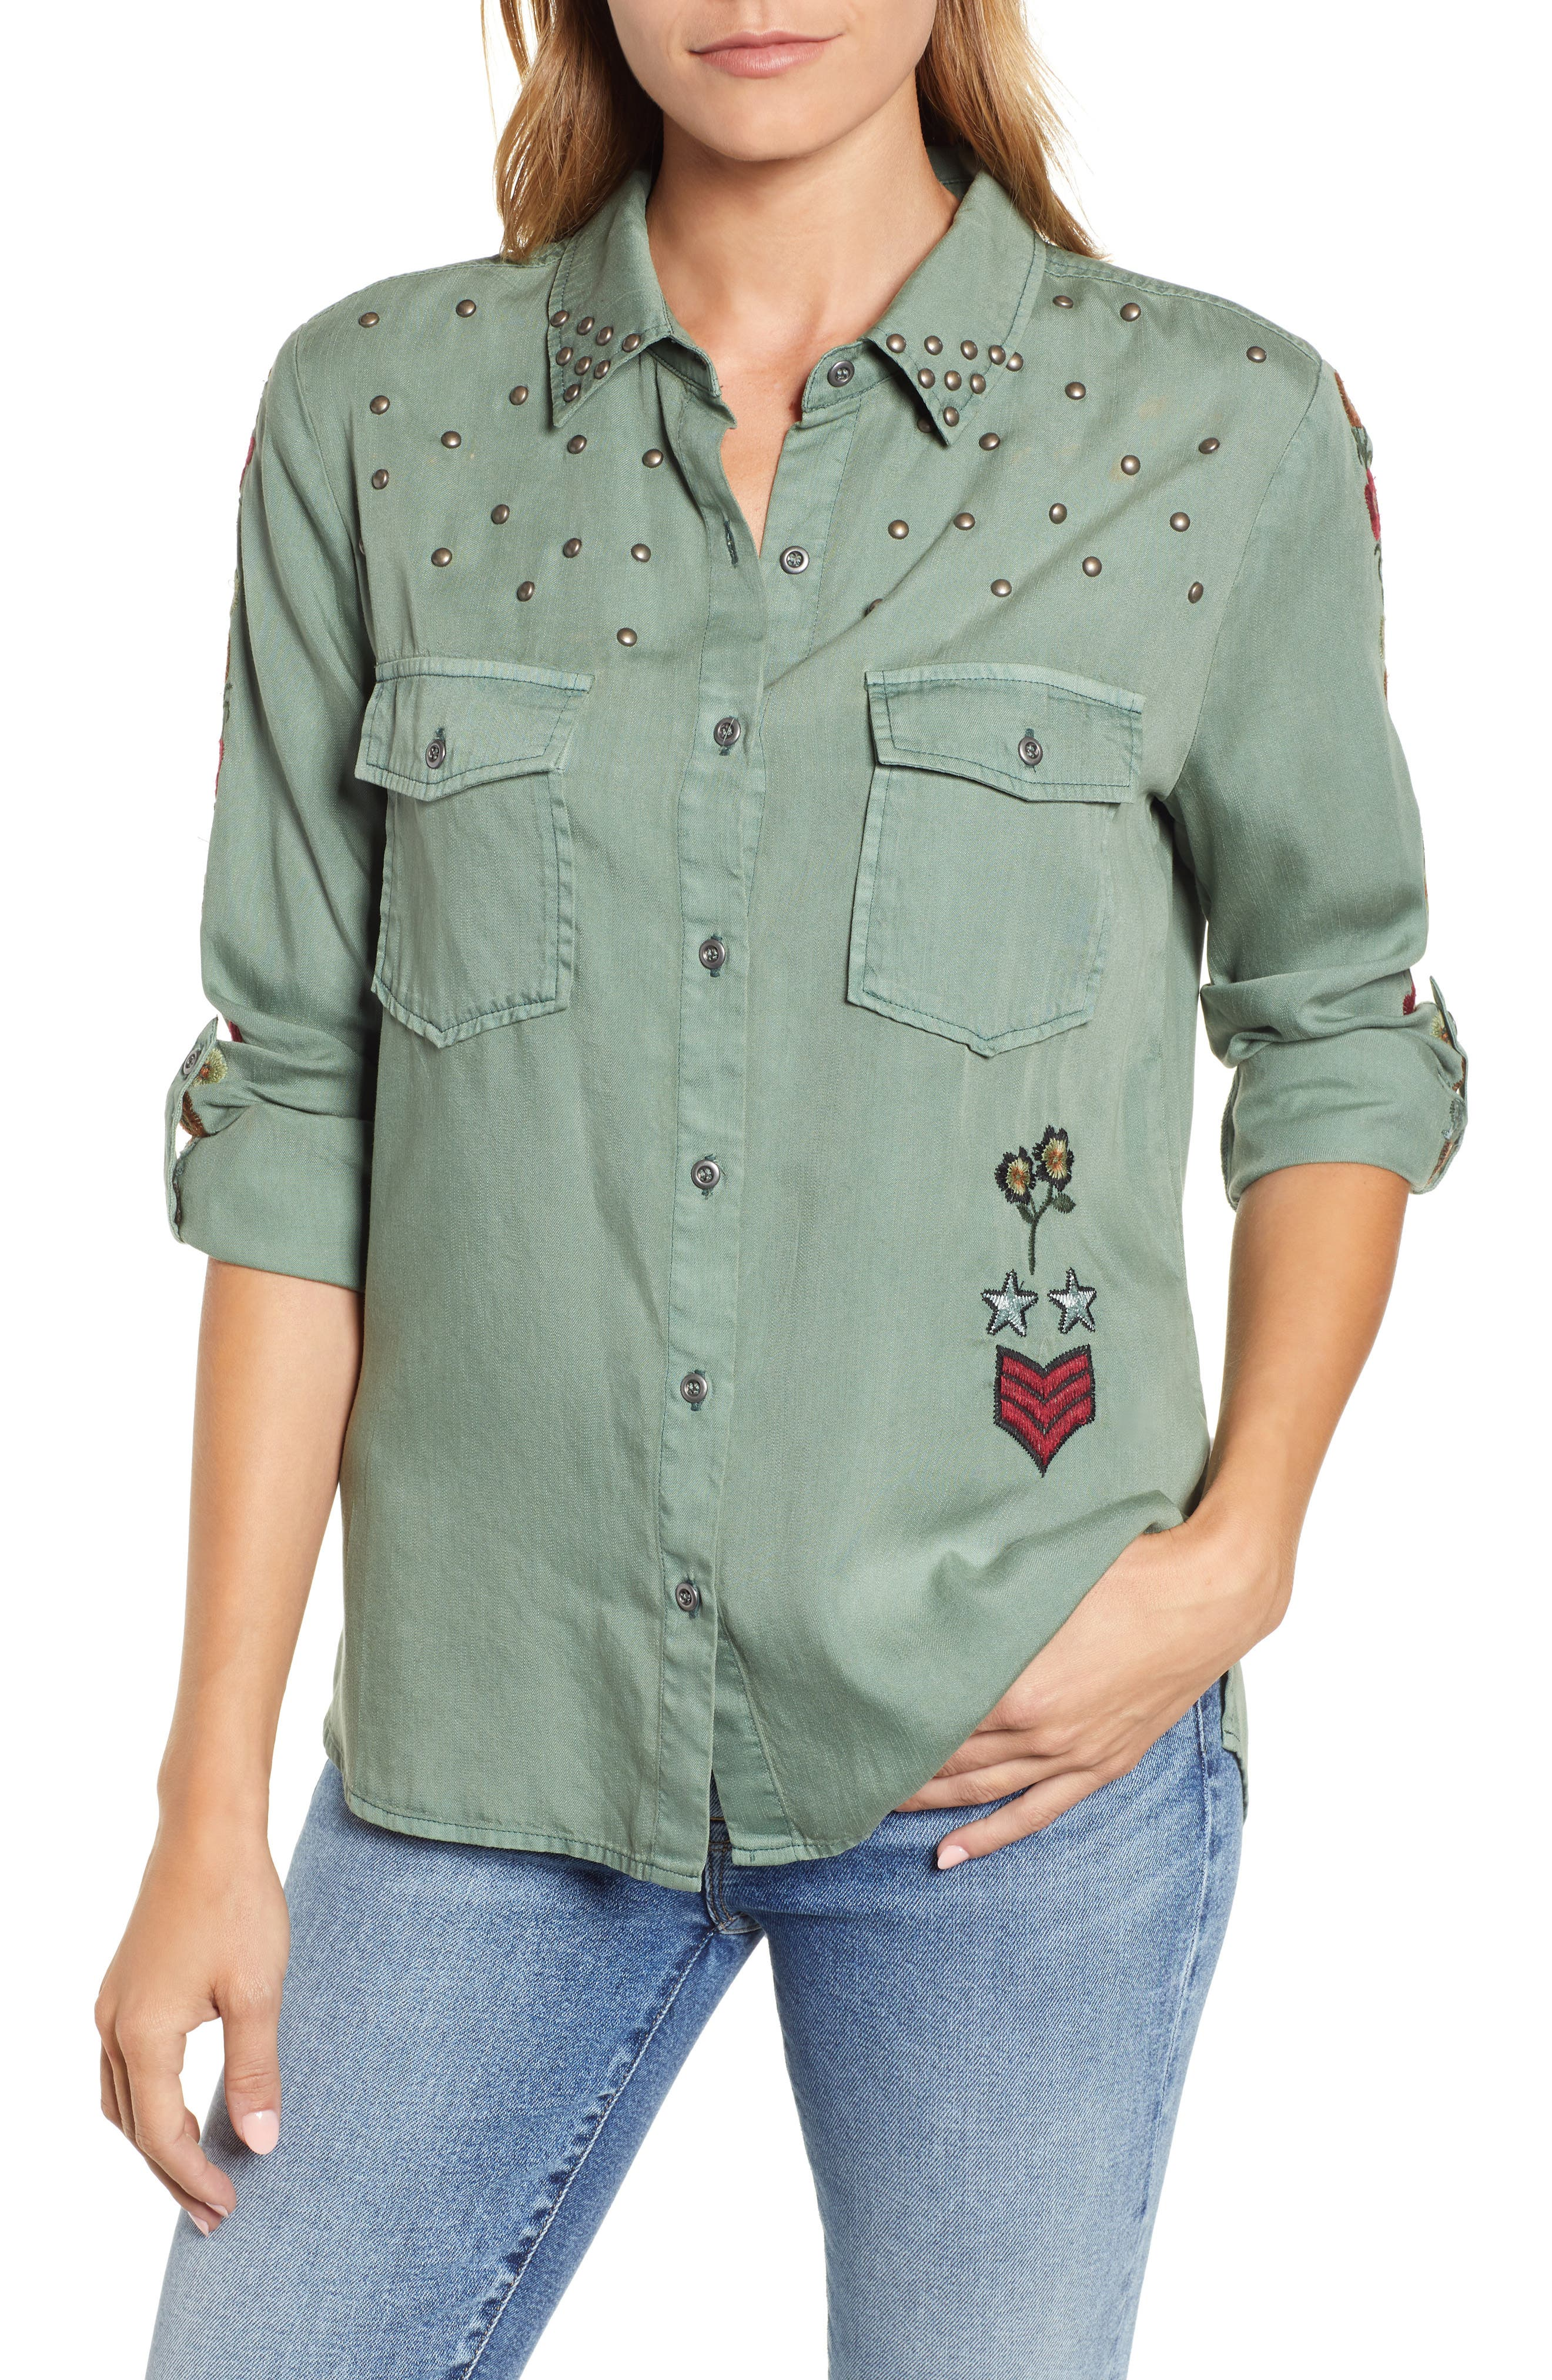 BILLY T Embroidered & Studded Military Shirt in Forest W/ Embroidery